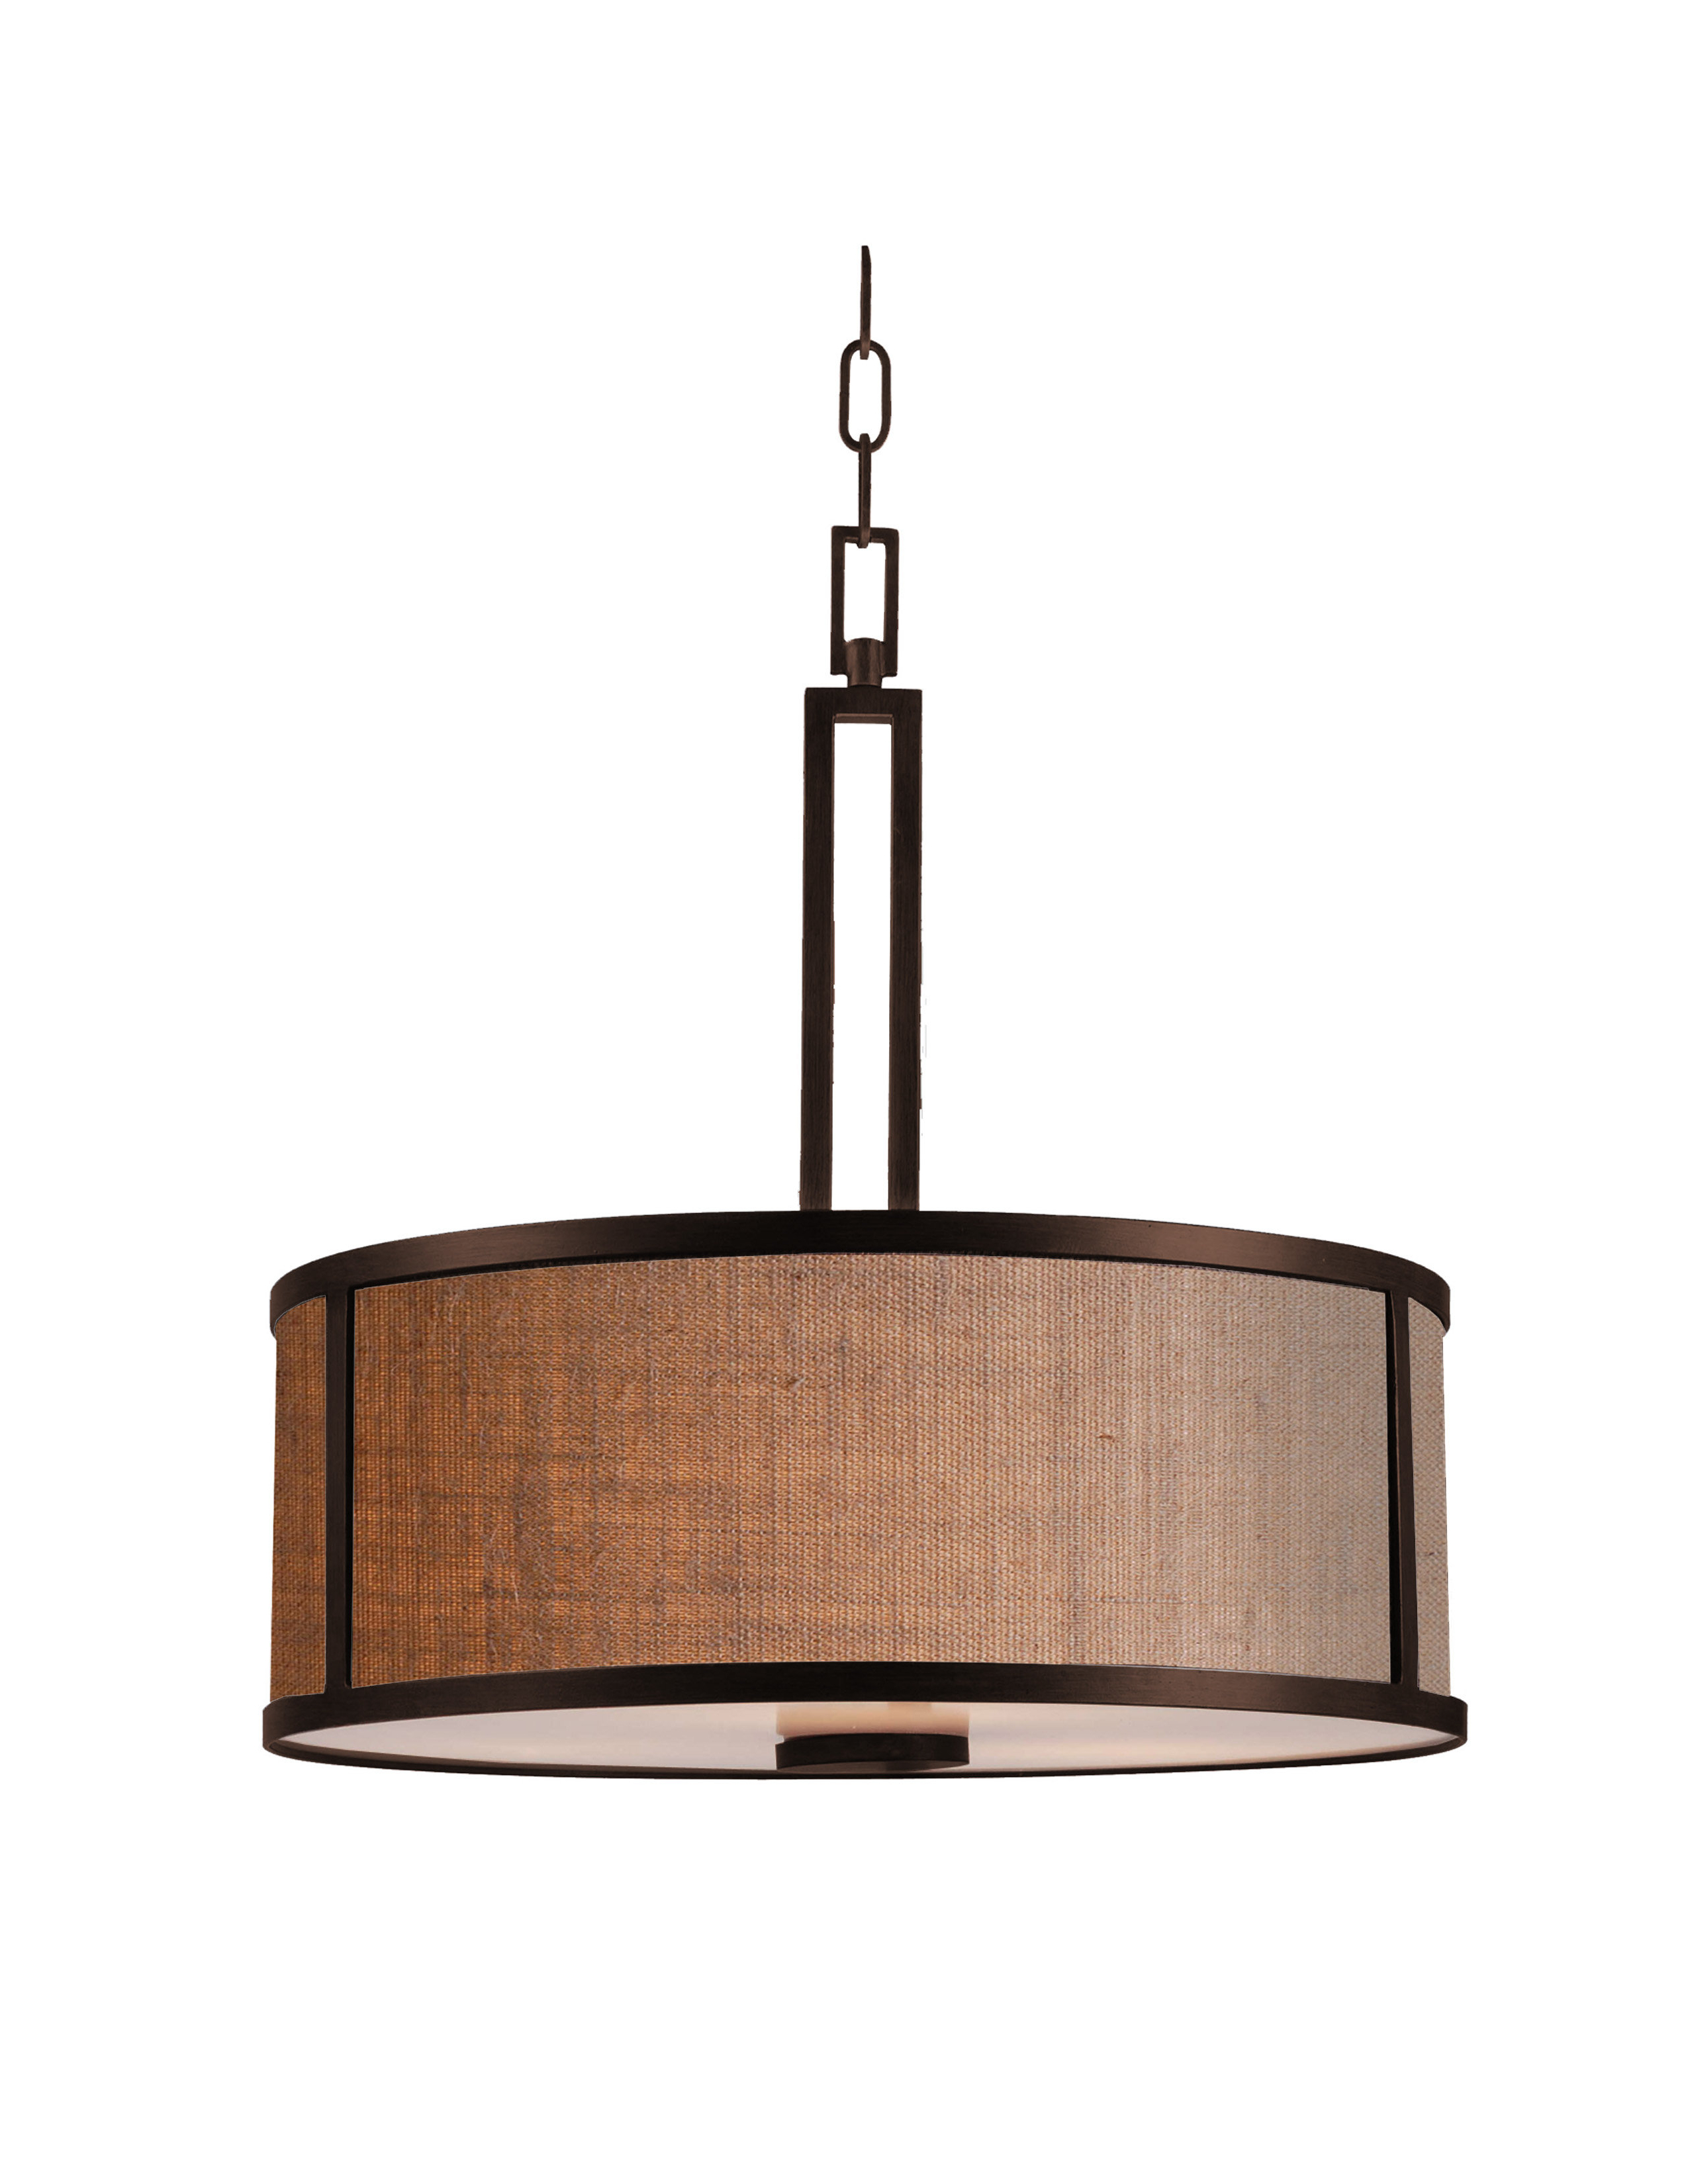 Foerer 3 Light Drum Chandelier With Regard To Recent Montes 3 Light Drum Chandeliers (View 5 of 20)